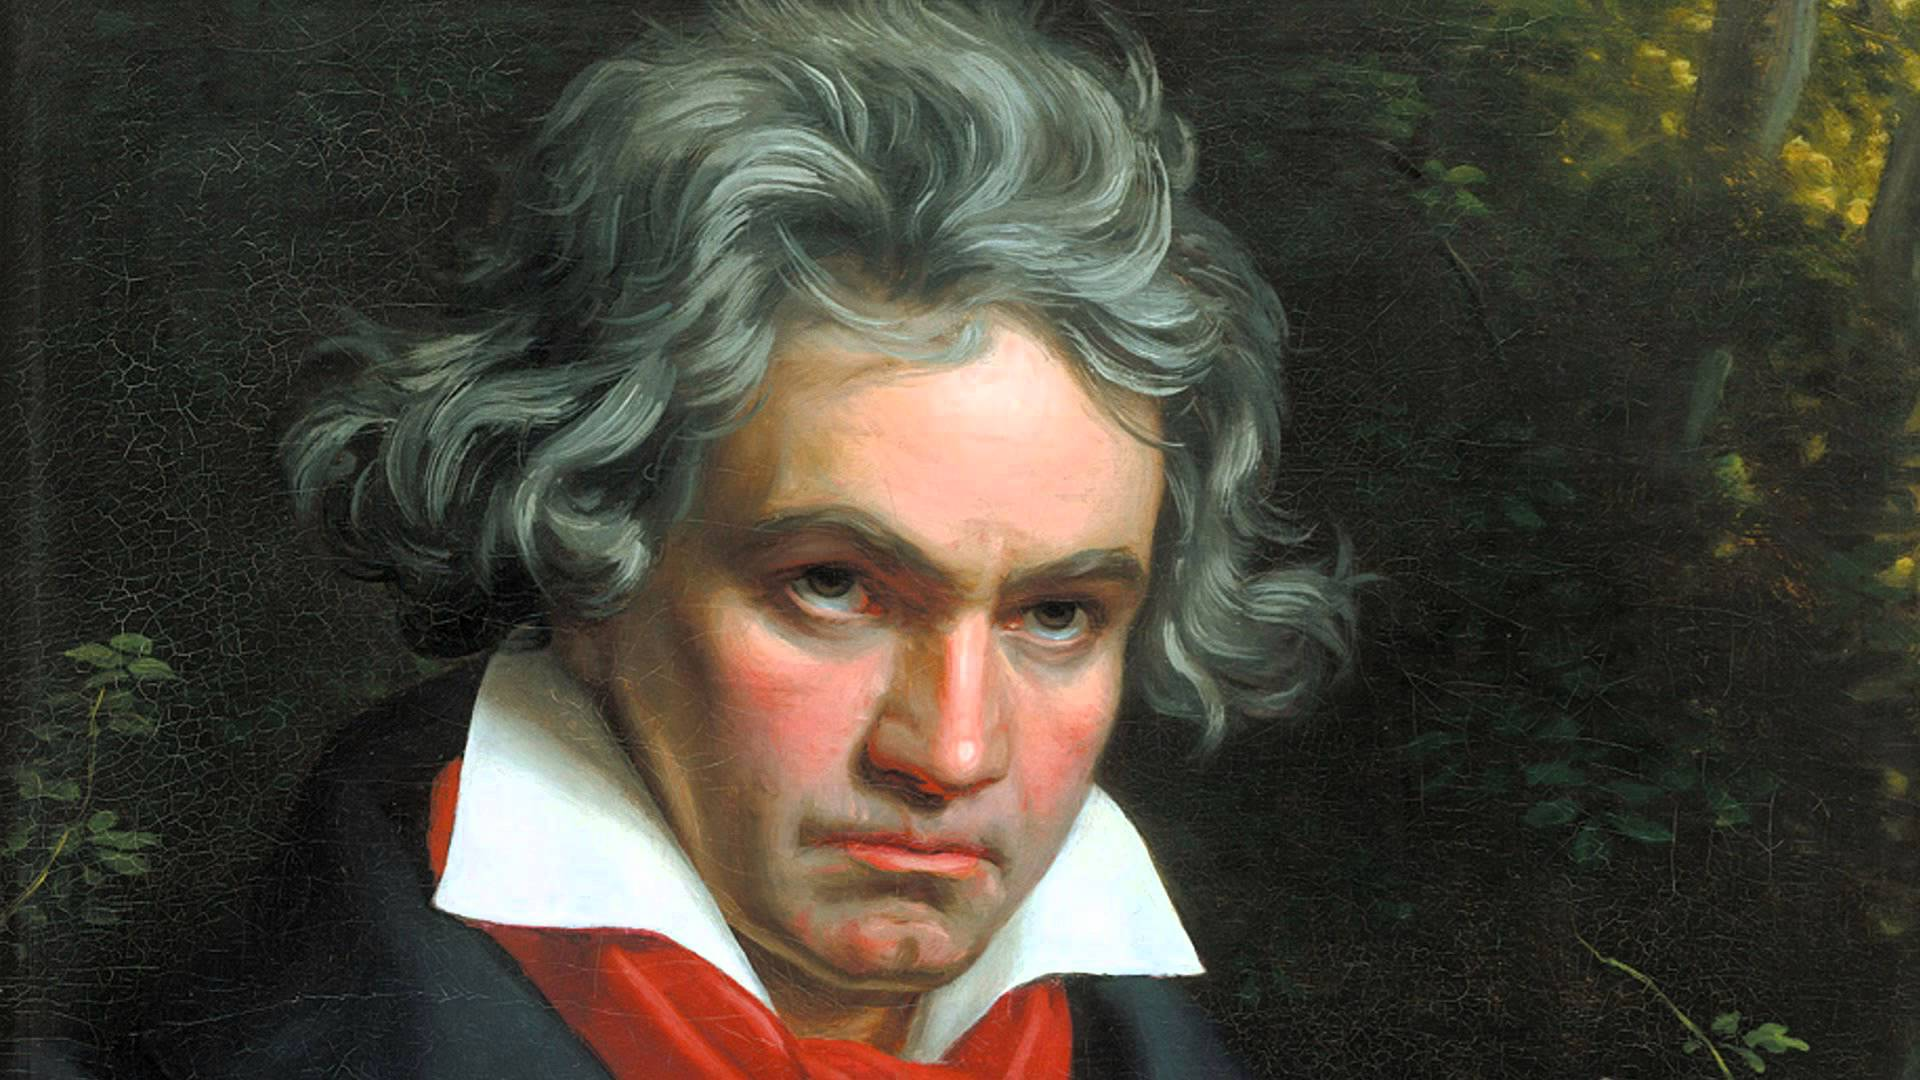 an overview of the life and work of ludwig van beethoven a famous composer Ludwig van beethoven is widely considered the most famous composer in history he is still very well known and influential to this day the life's work of beethoven radically changed music forever.